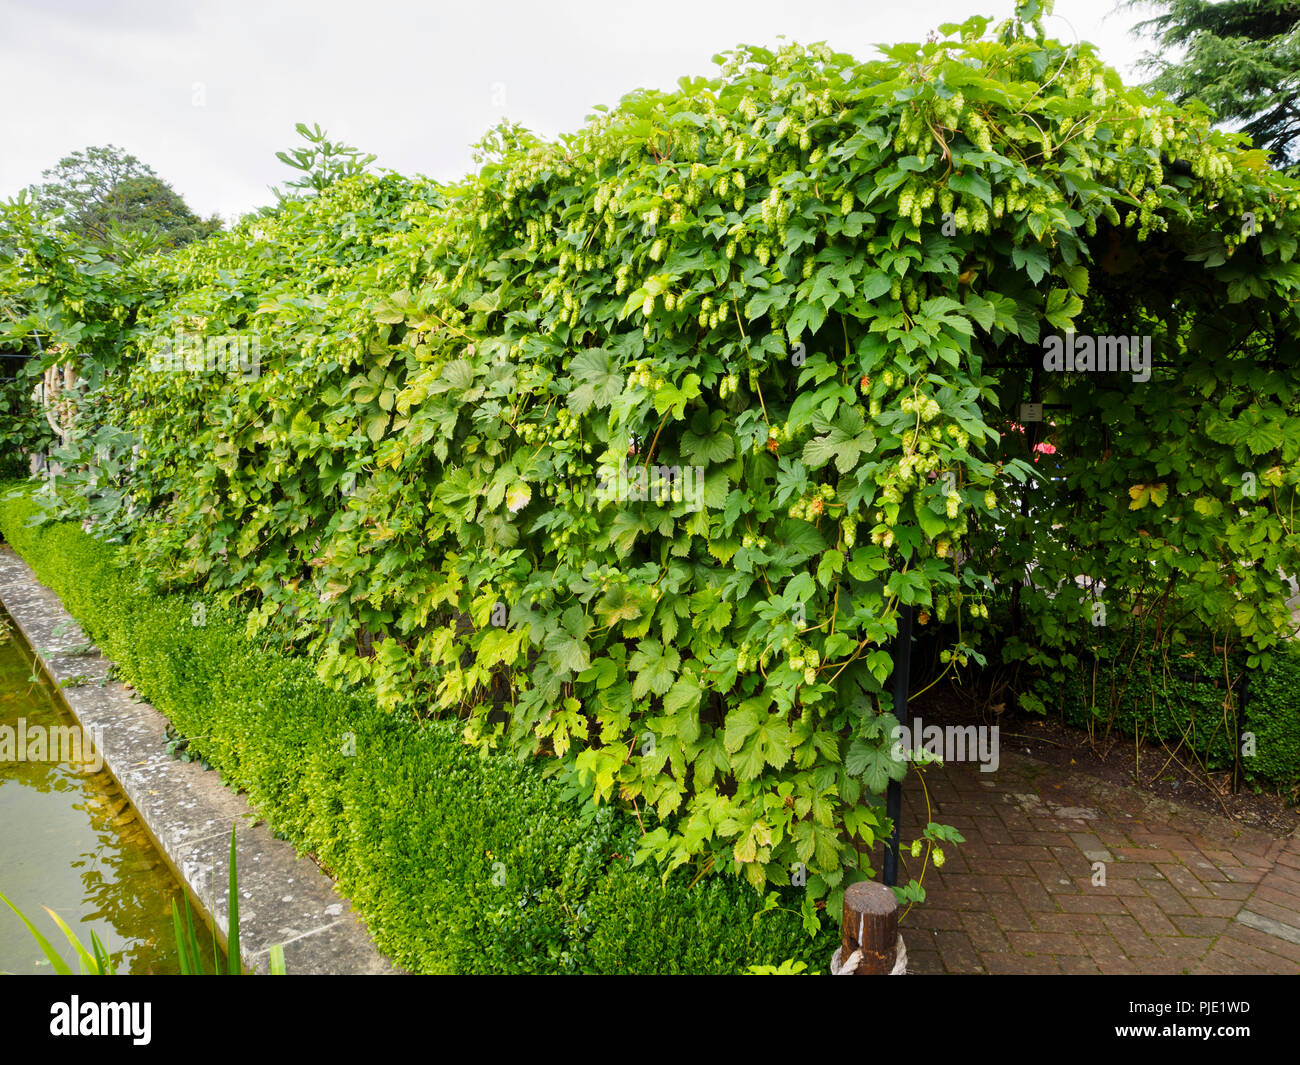 Hops, Humulus lupulus, covers an archway over a path in the Physic Garden at Buckfast Abbey, Devon, UK - Stock Image